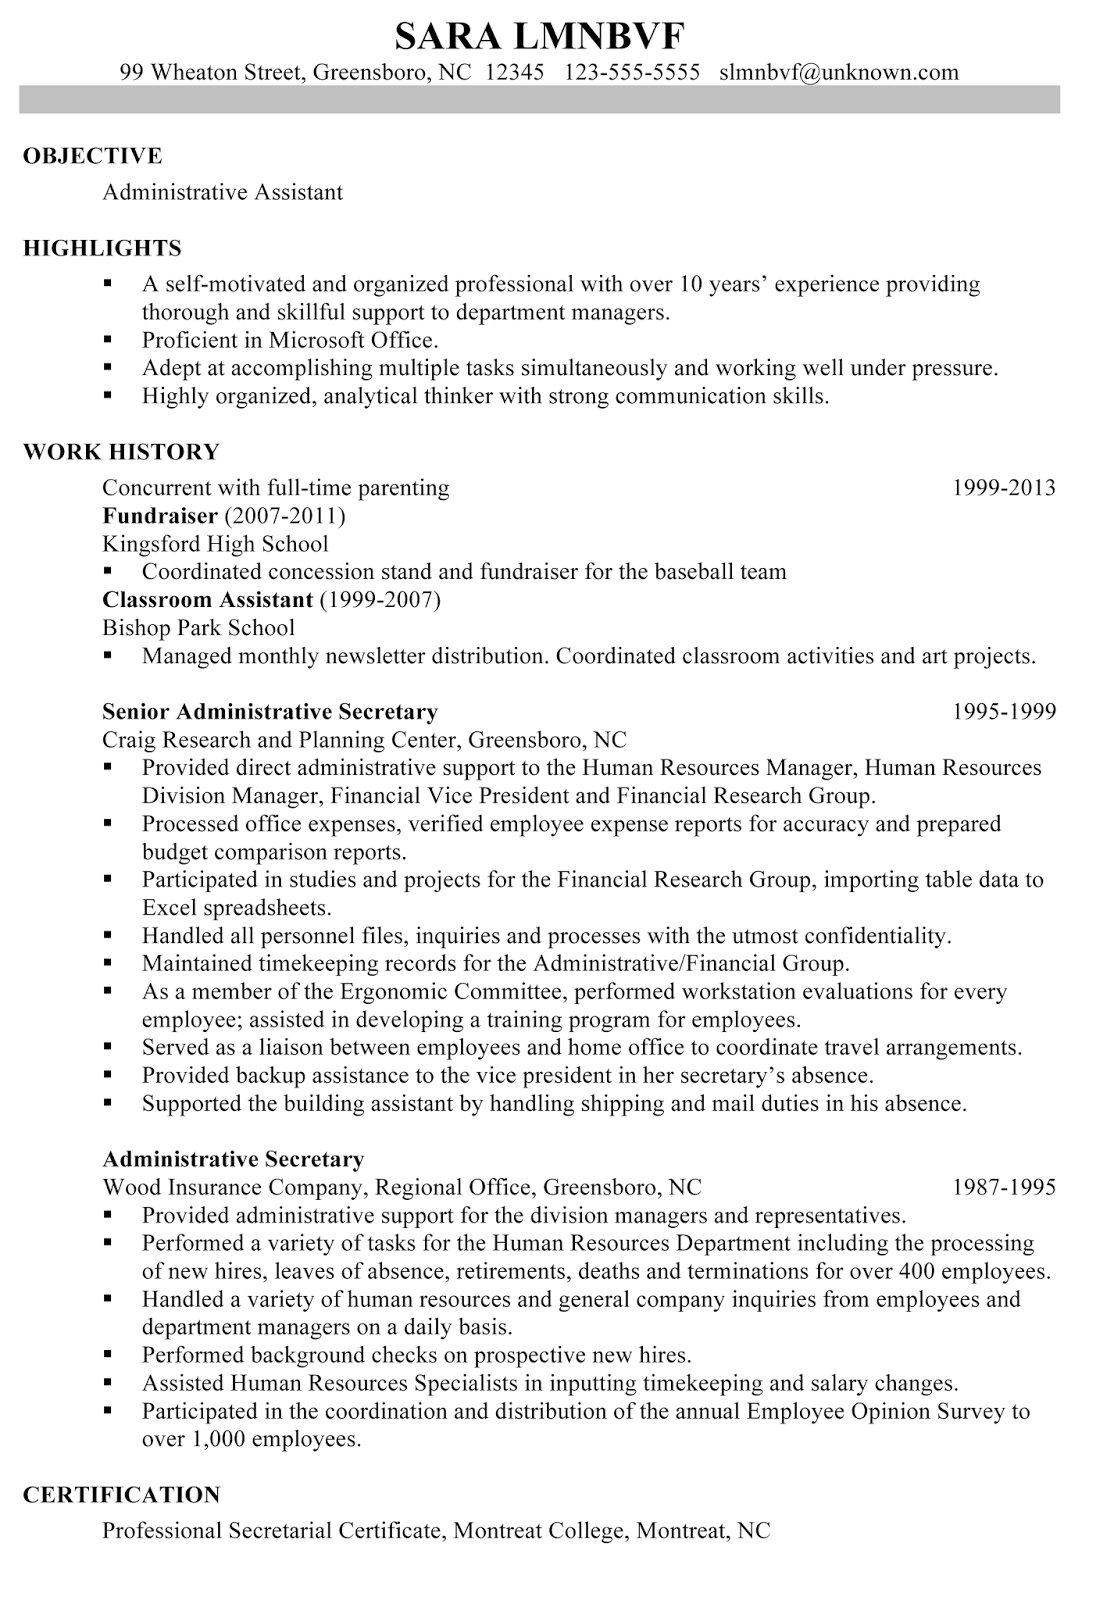 Examples Of Highlights Of Qualifications In A Resume